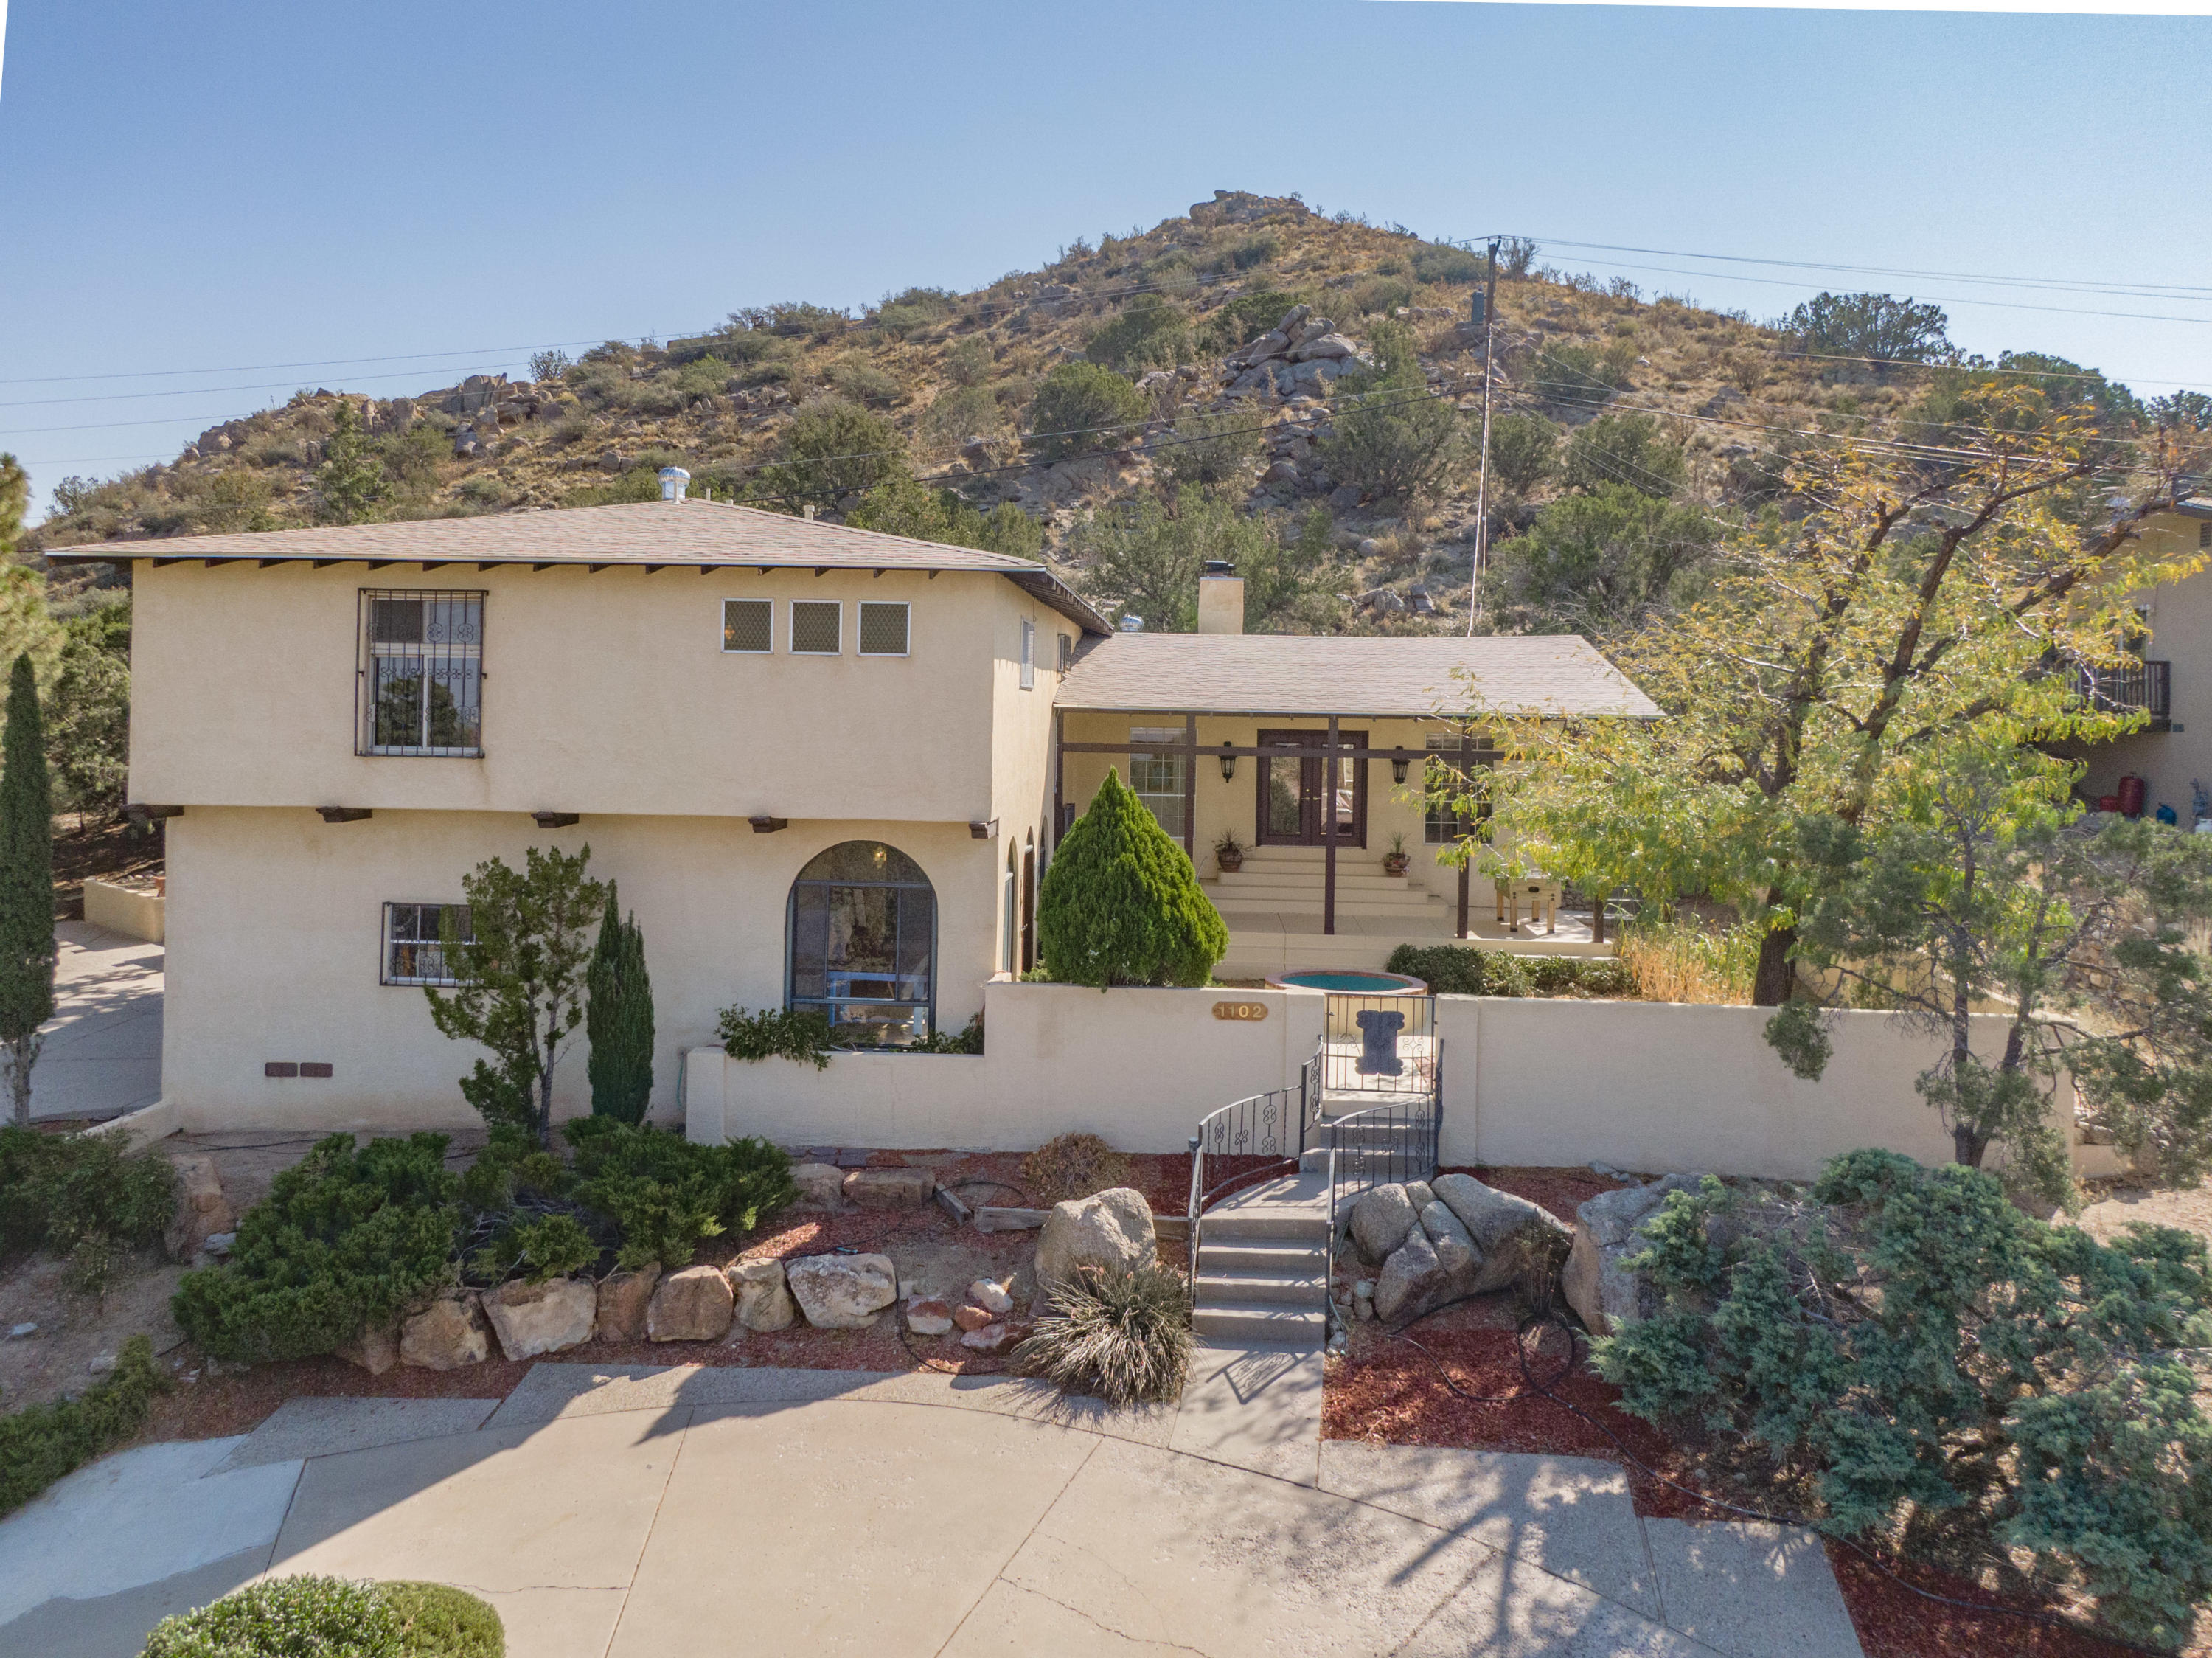 Beautiful Mediterranean style home with breathtaking views of the city and the mountains! New roof, tile and birch hardwood floors and granite and quartz countertops throughout. Large open arched windows, plus two living areas and two fireplaces. Heated sunroom overlooks the front courtyard and keeps you warm in the winter months. 2 car garage with work-shop and large storage.